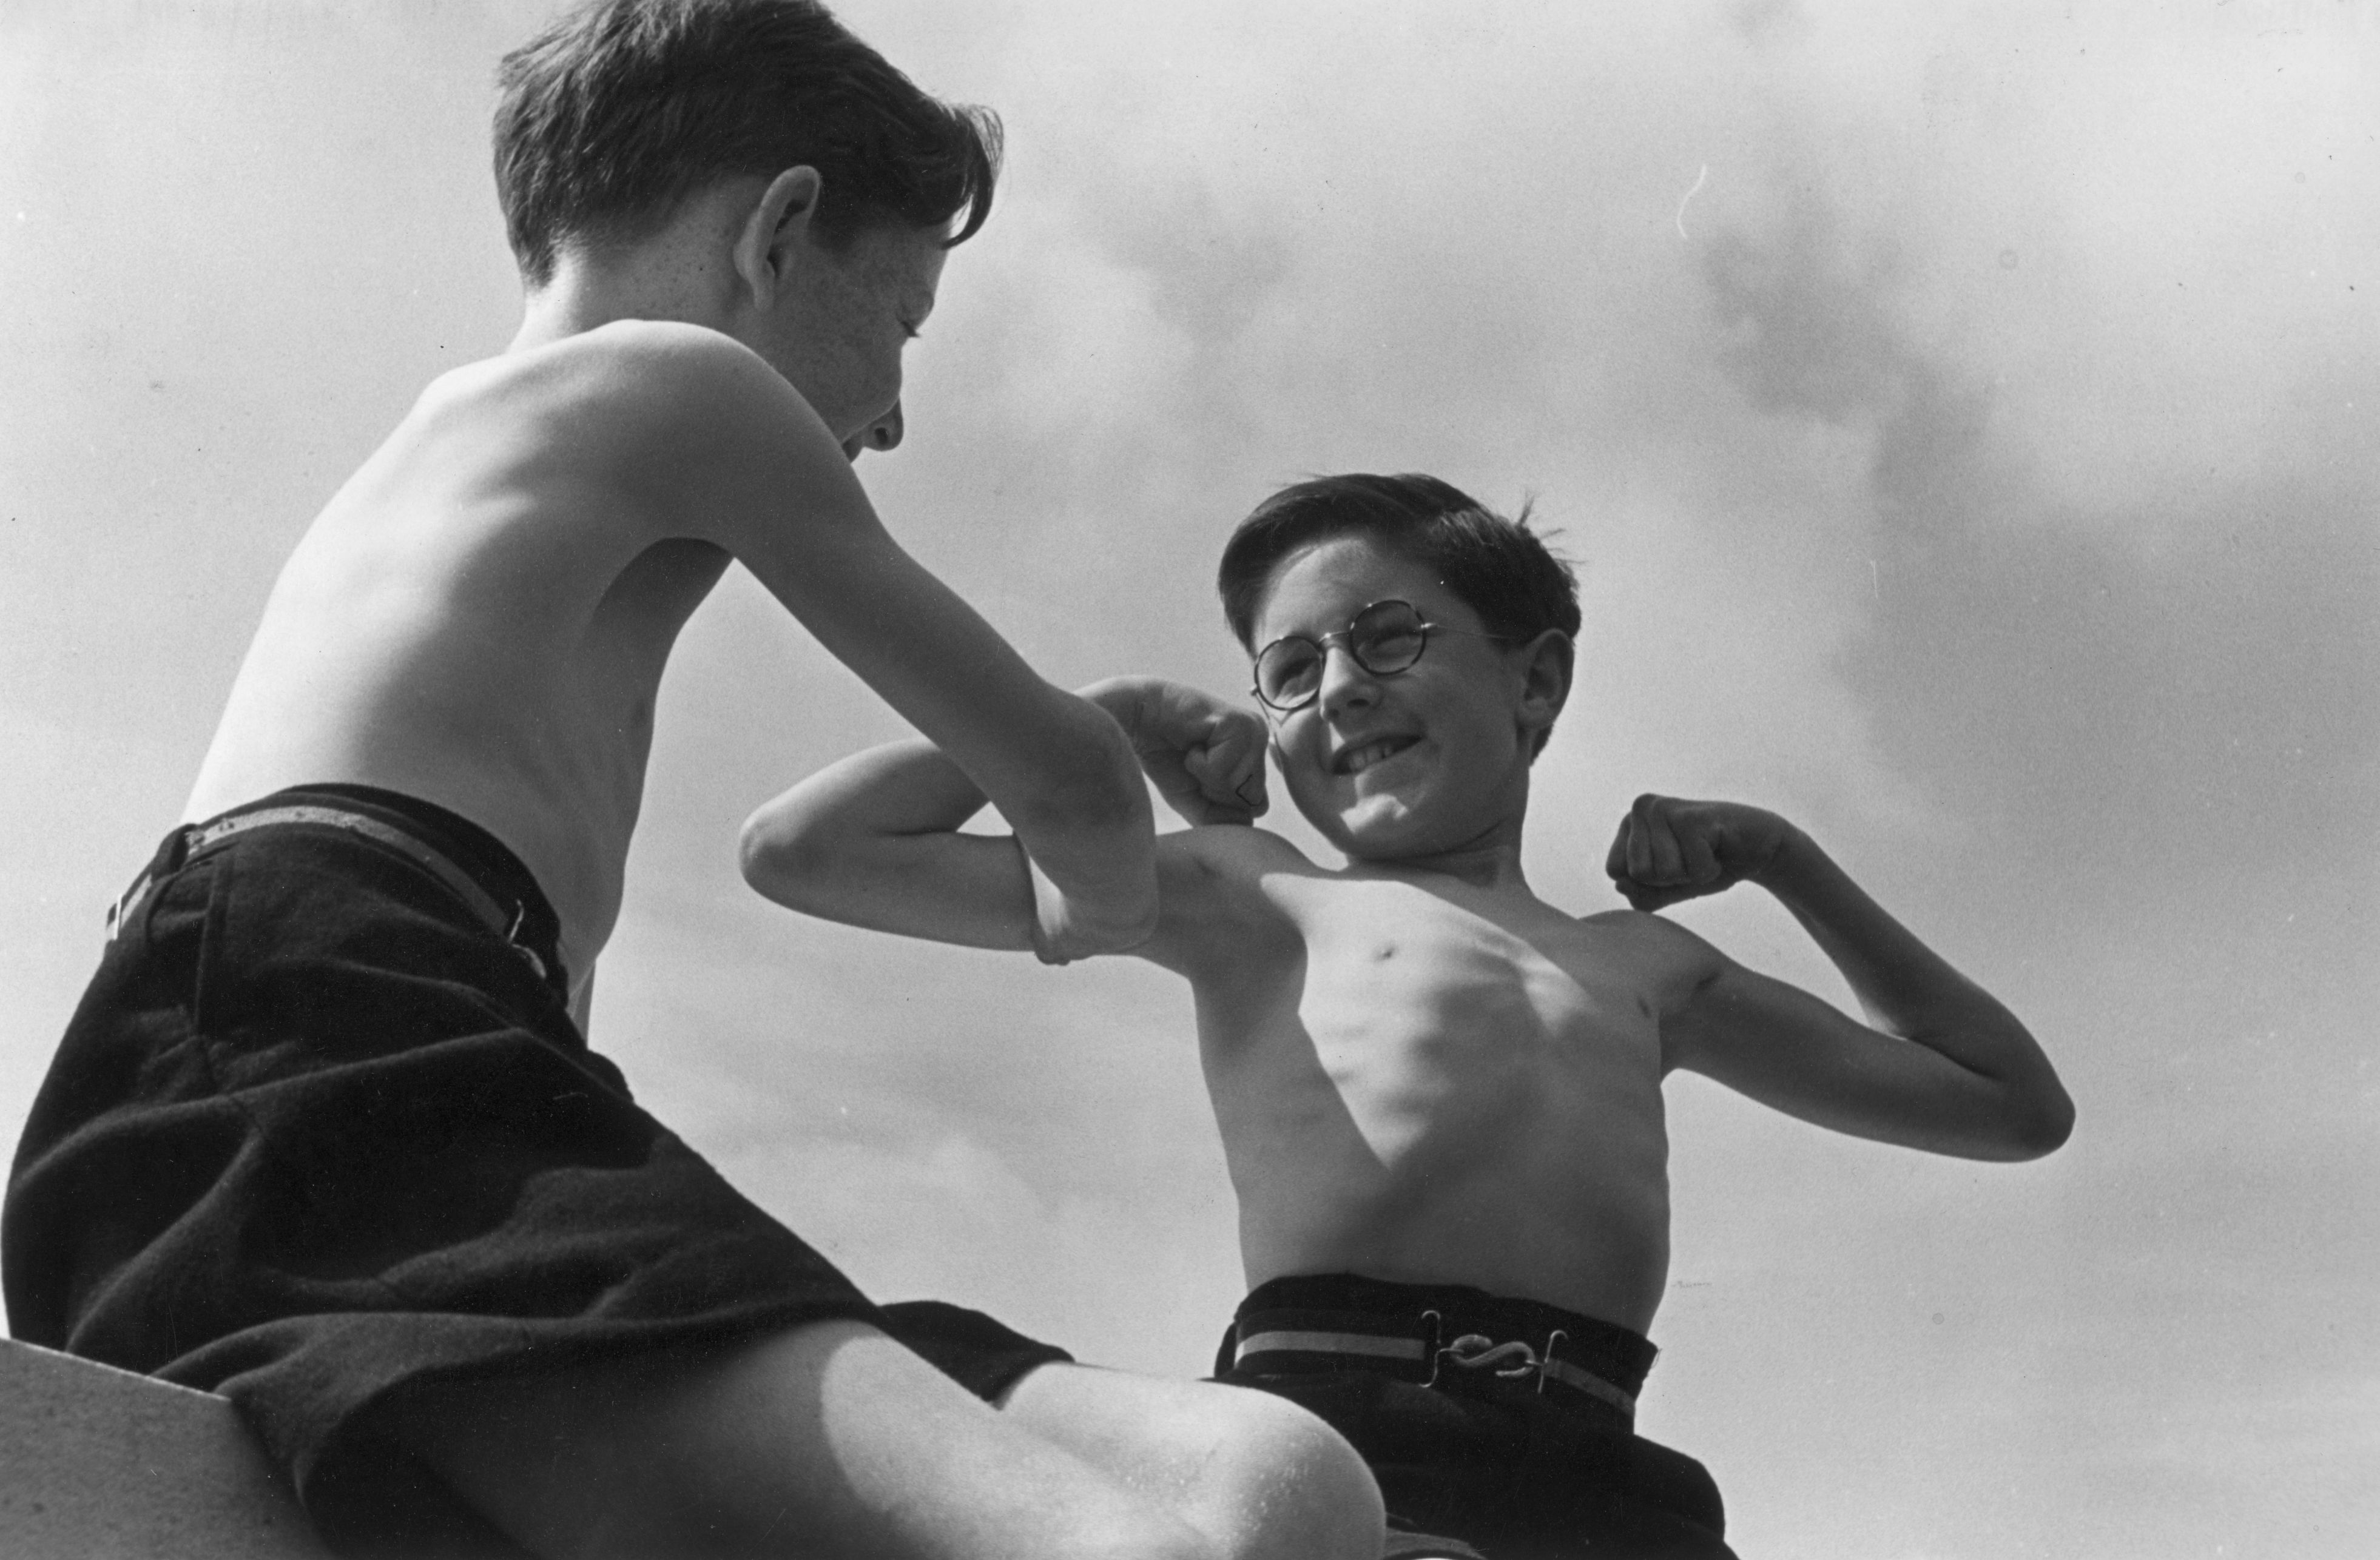 Two boys comparing their muscles